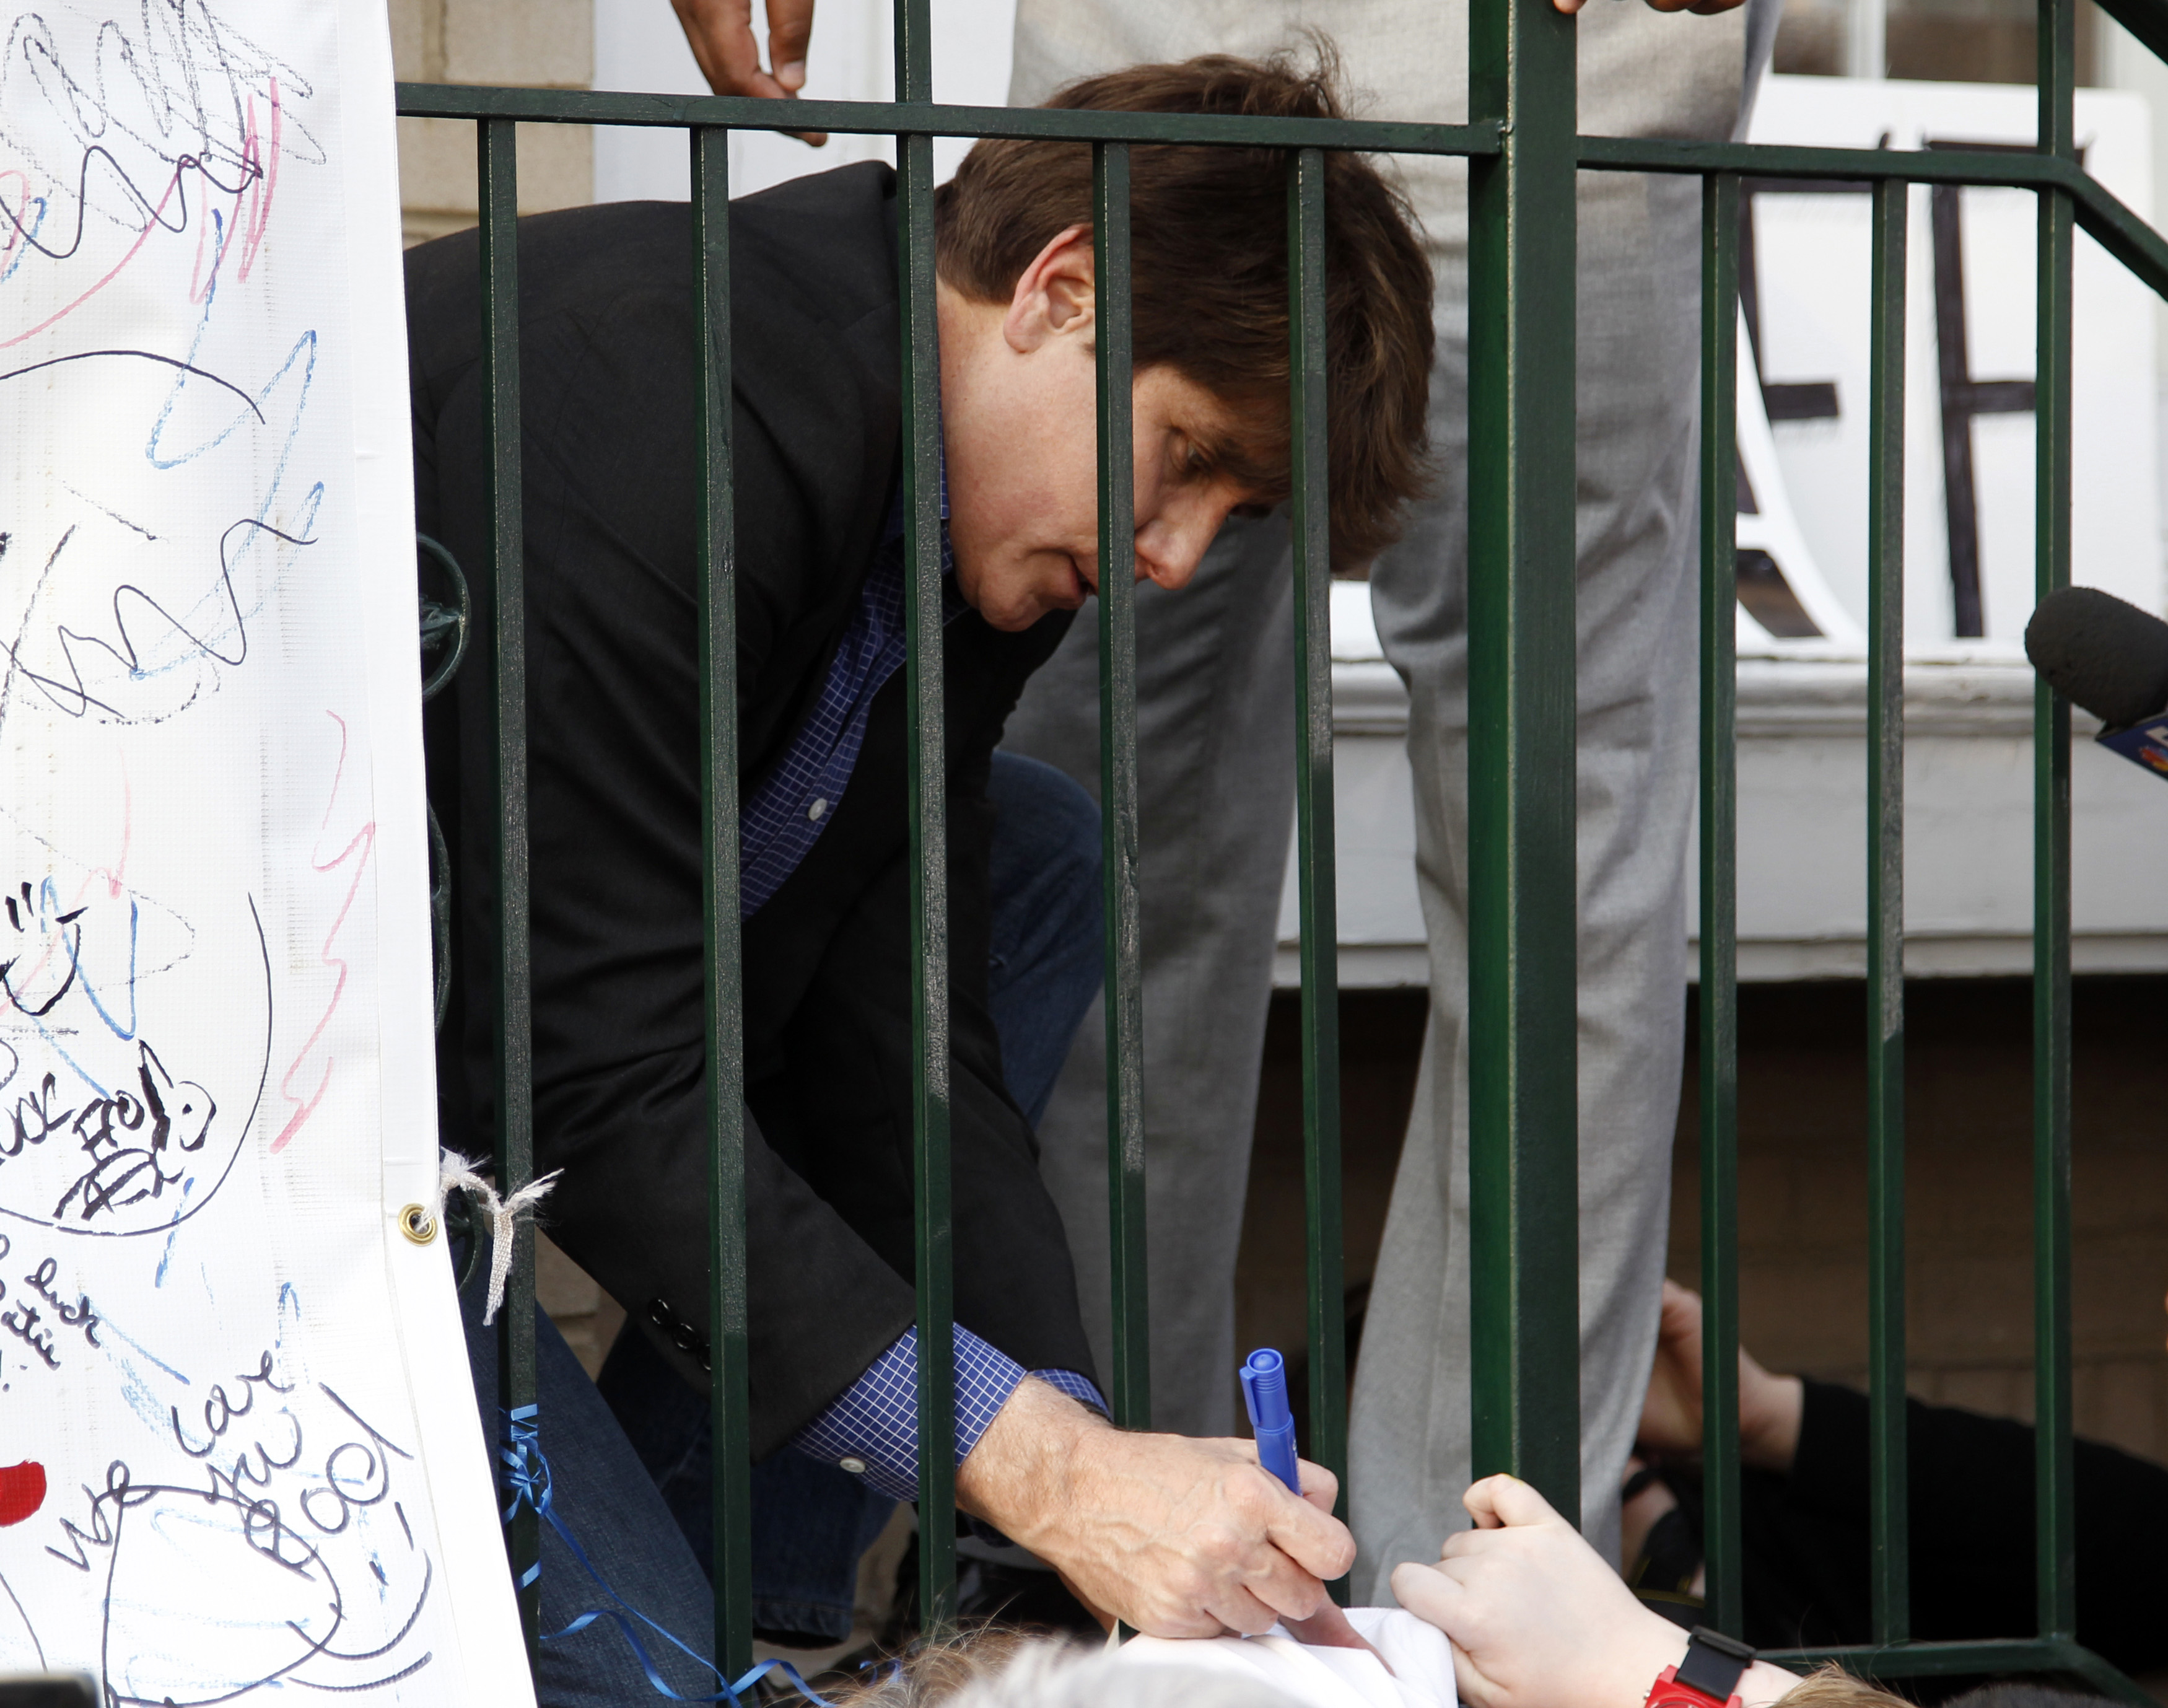 Former Illinois Governor Rod Blagojevich signs autographs on his front porch after making a statement to reporters outside his Chicago home one day before reporting to federal prison in Colorado to serve a 14-year sentence for corruption, March 14, 2012. REUTERS/Jeff Haynes